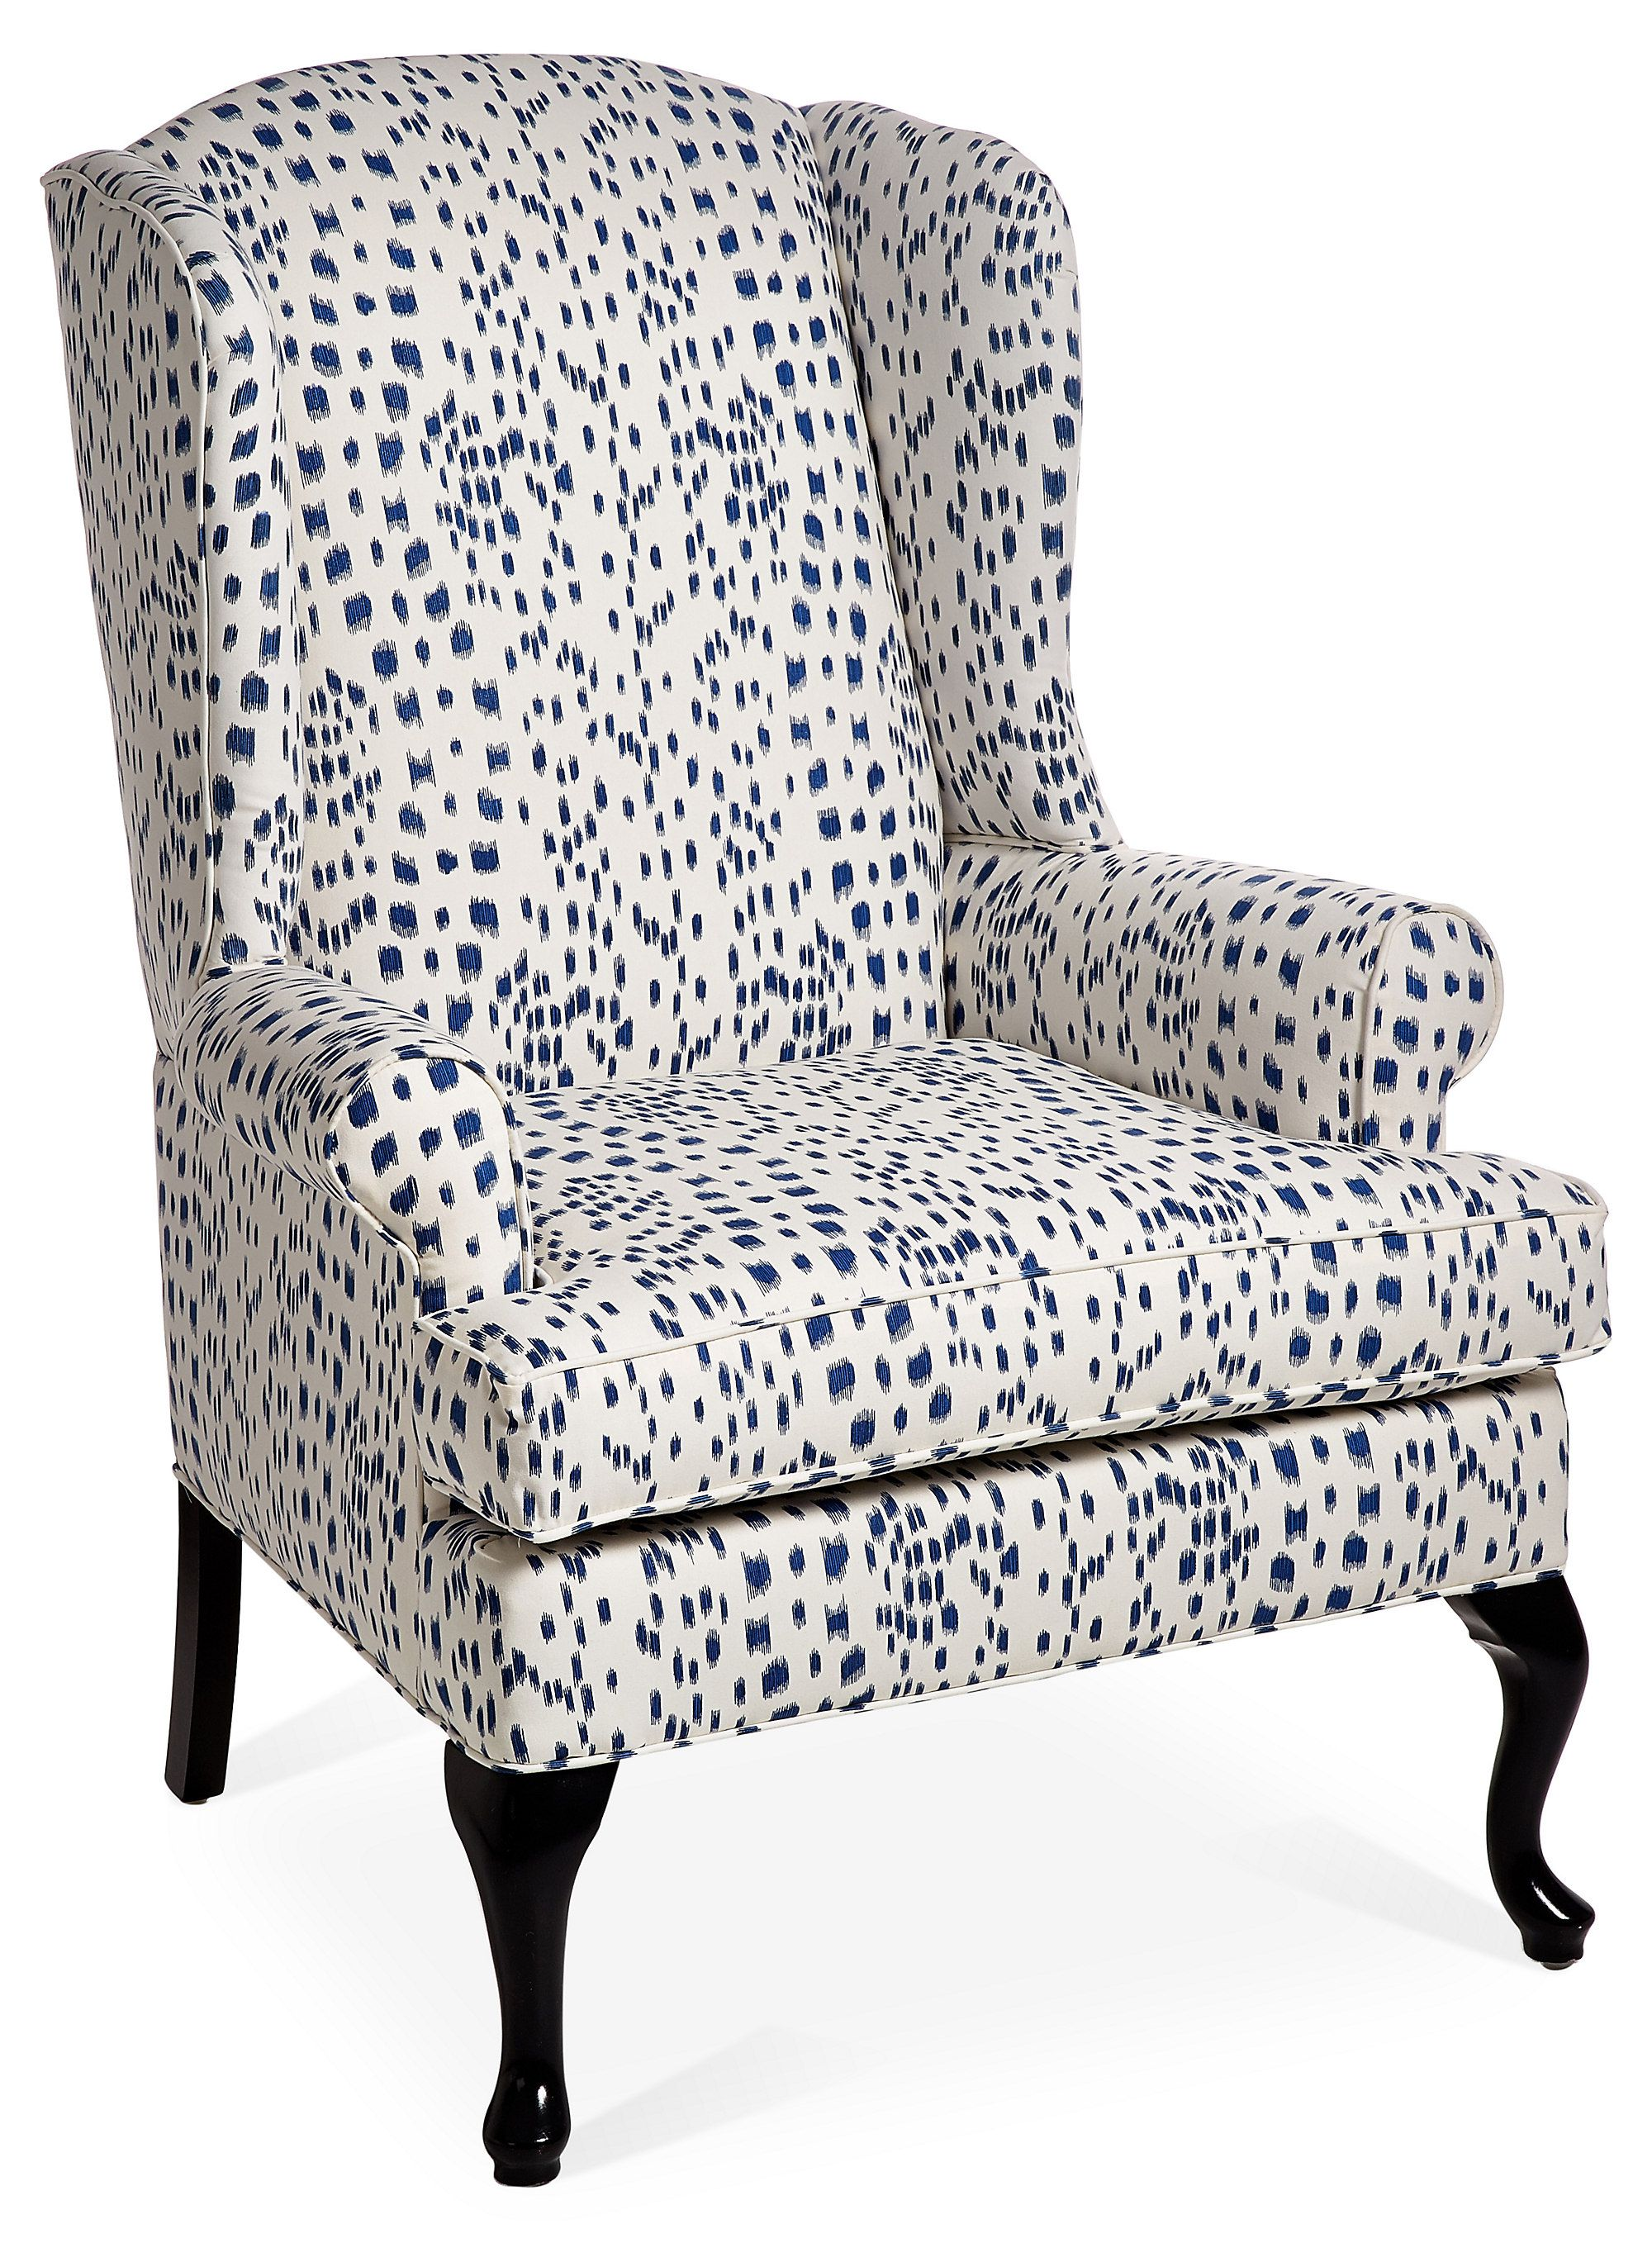 Wing Back Chairs The Classic Wingback Chair Gets A Modern Update With Contemporary